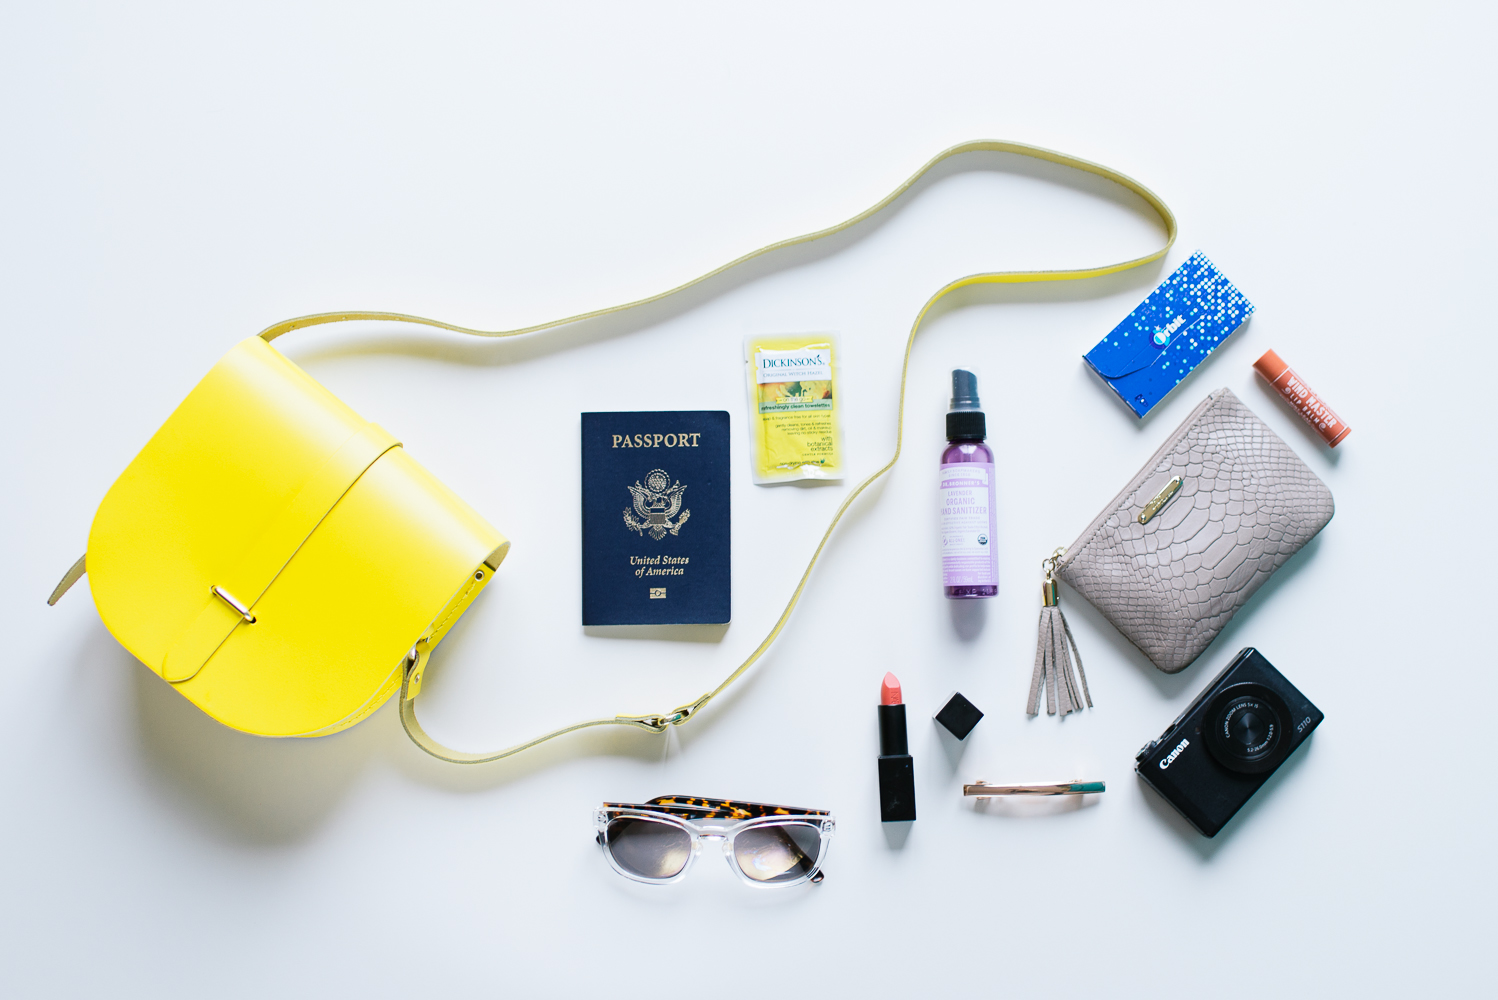 Beautyosaurus Lex-Alex Good-Cambridge Satchel-Saddle Purse-Yellow-What's in My Purse-Travel-2016.jpg